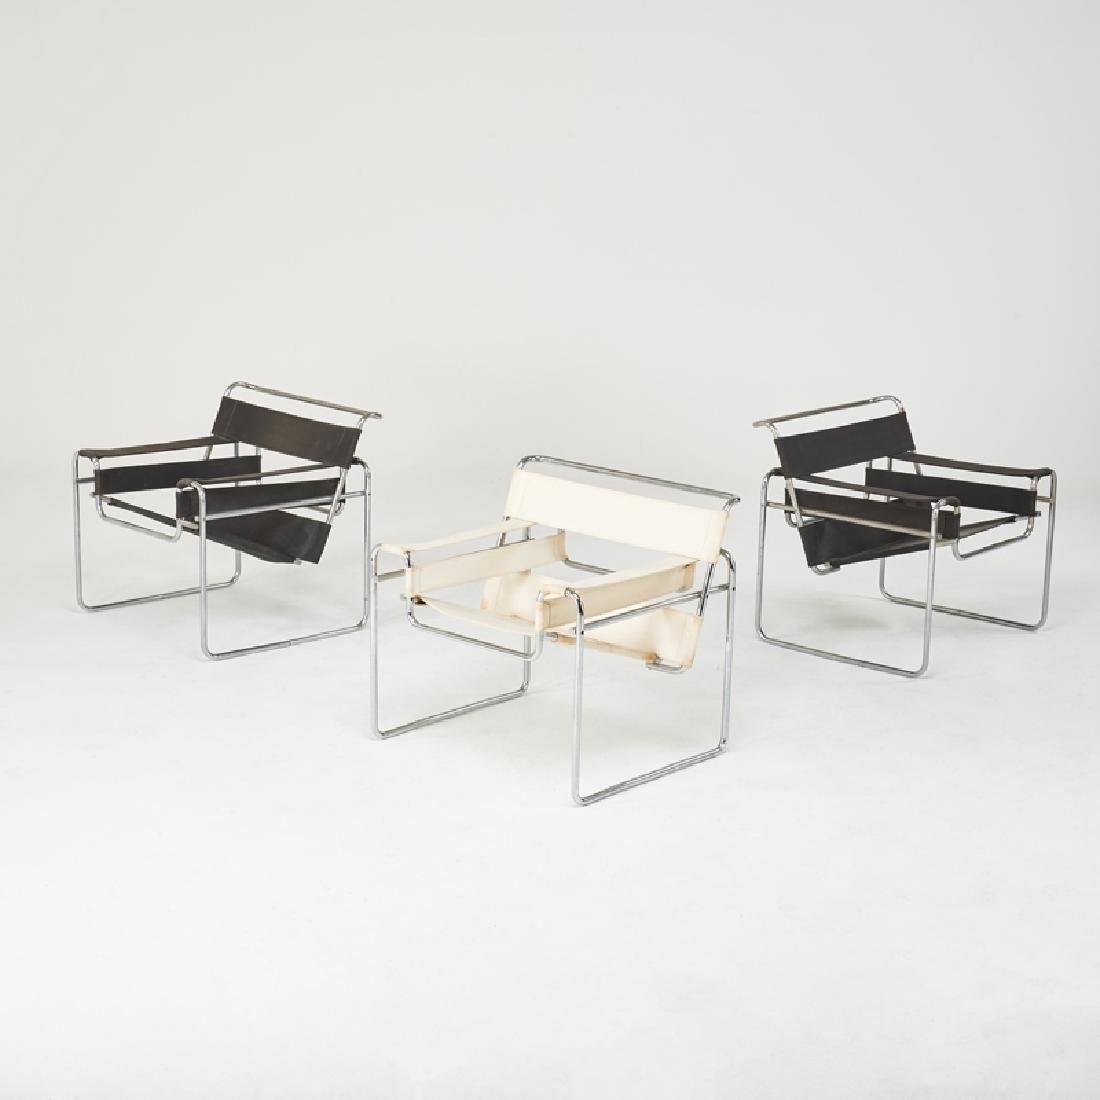 STYLE OF MARCEL BREUER